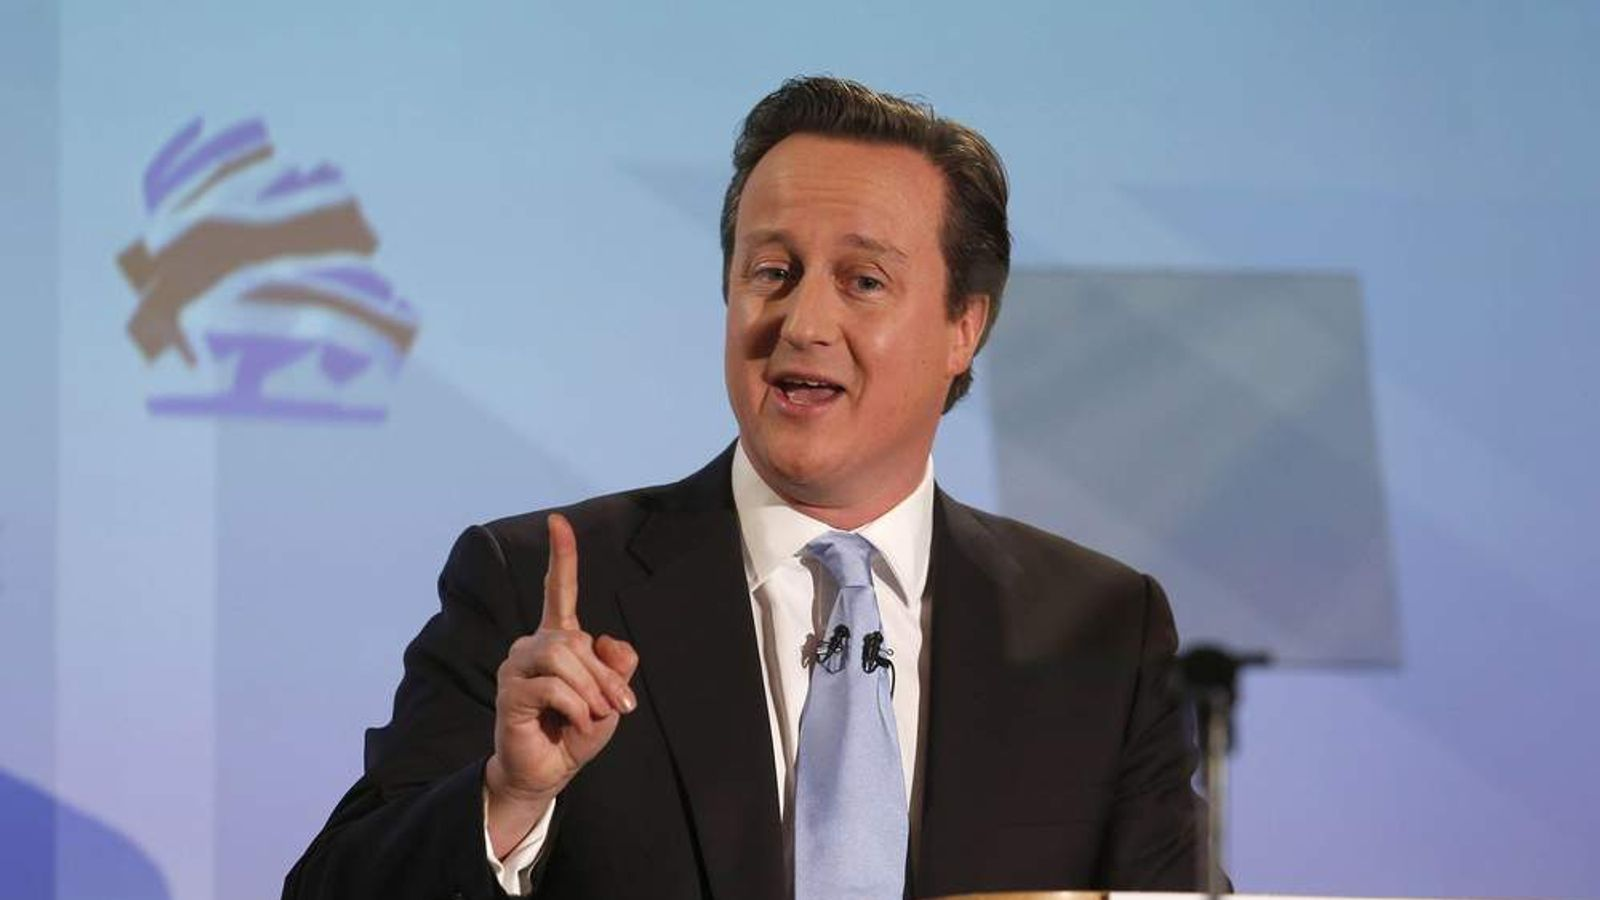 David Cameron at the Tory spring conference